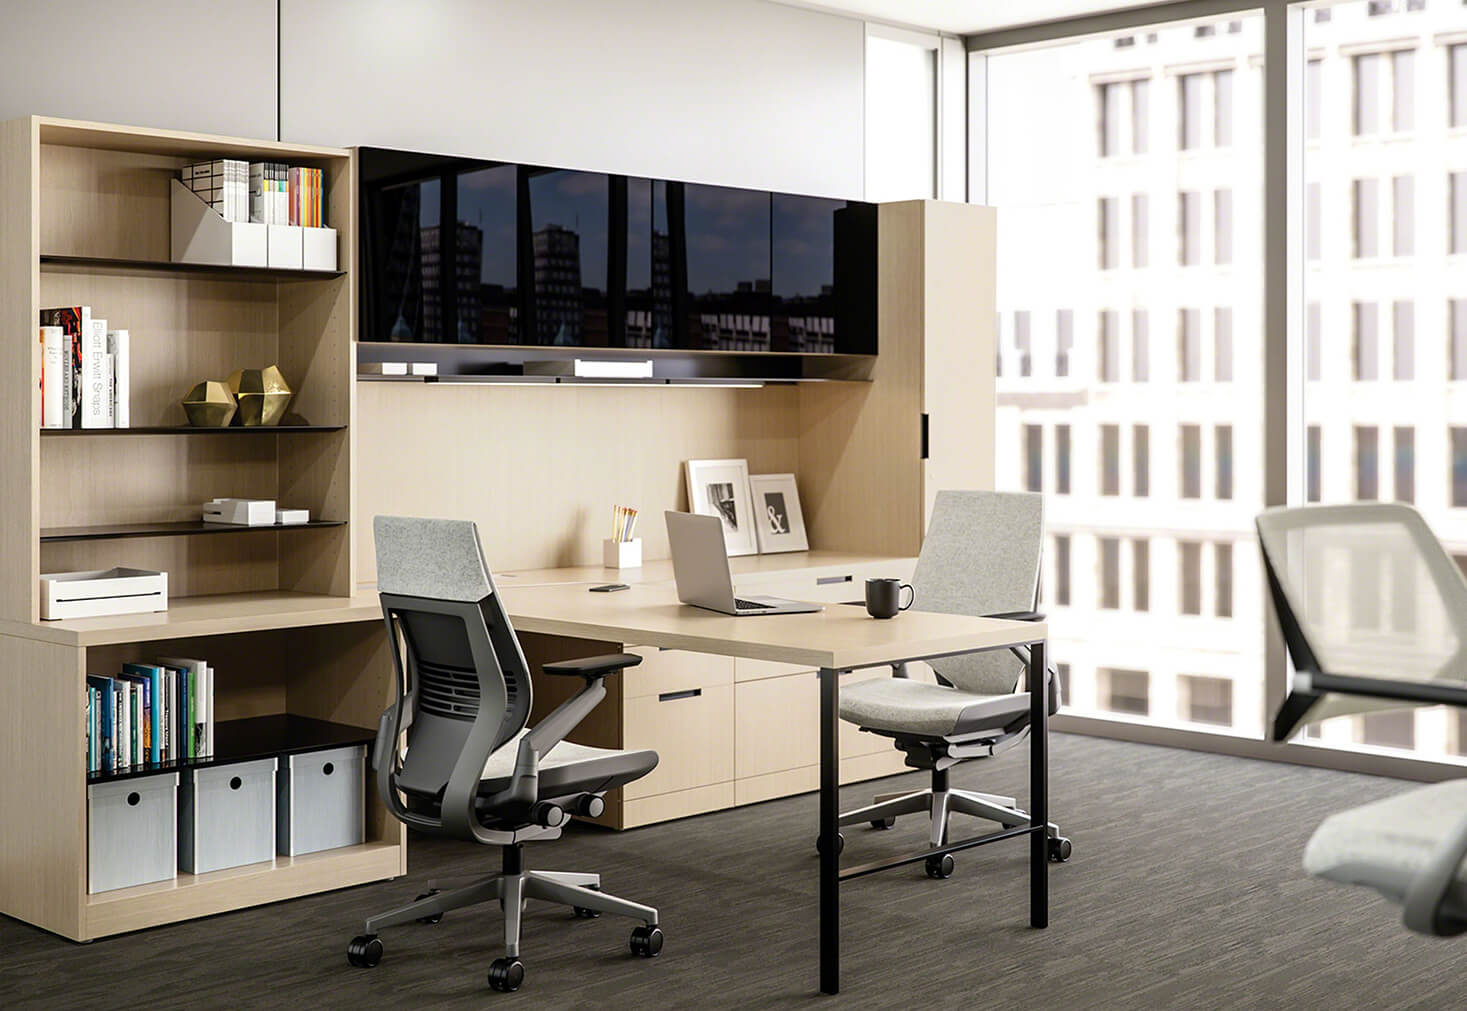 Office by OFDC Commercial Interiors with a desk and two chairs in front of a large window and TV